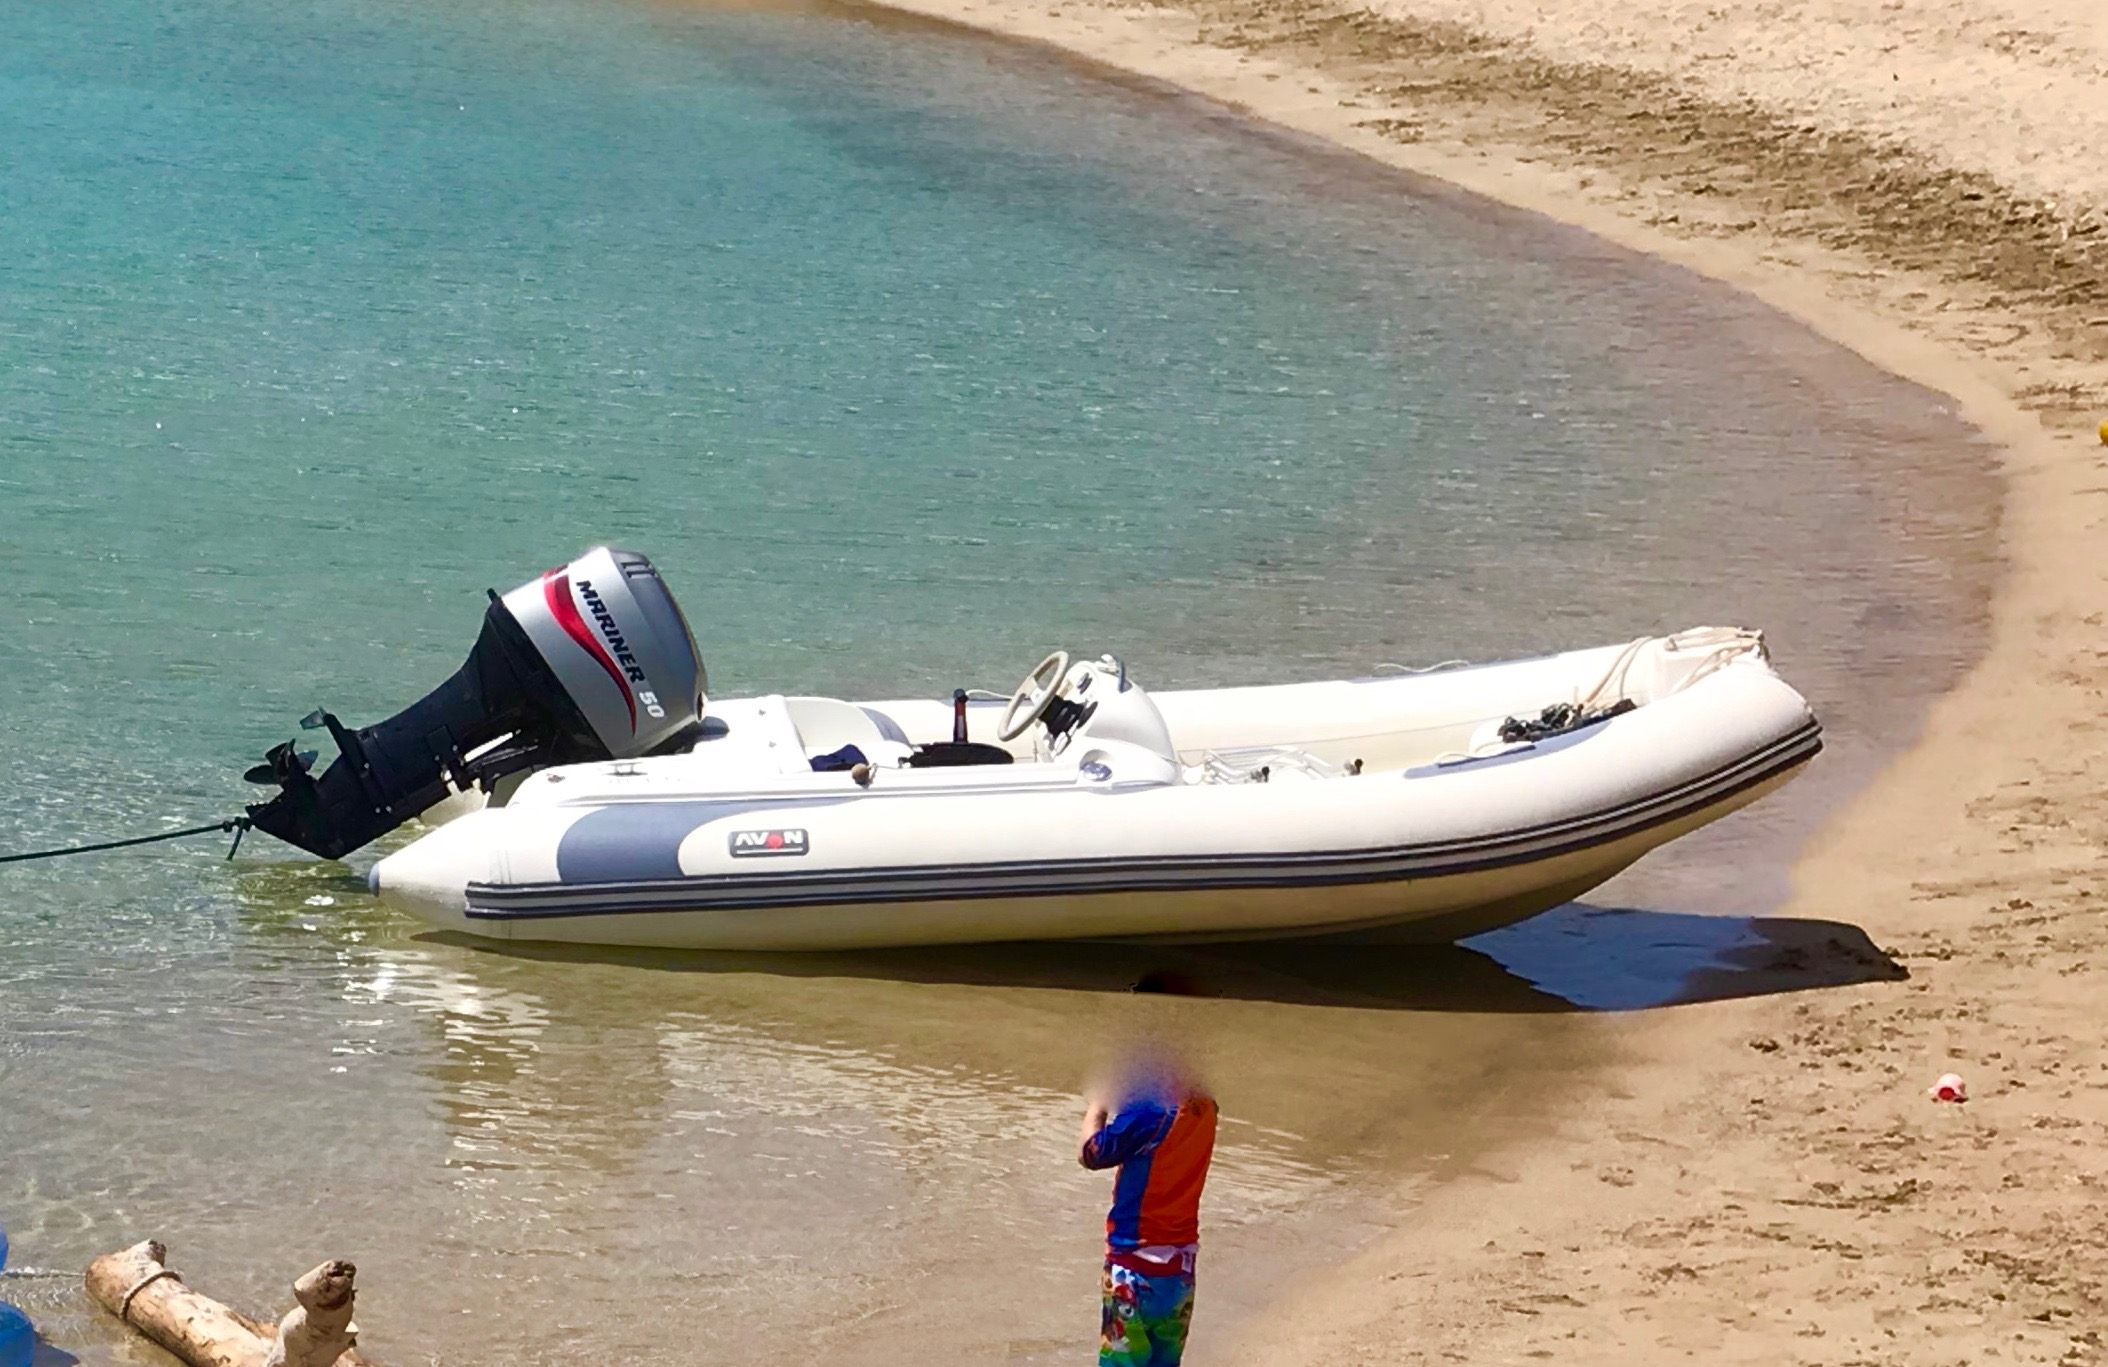 For sale: Avon Seasport 400 Deluxe Rib/trailer package with cover- 4m long,  carries 5x people, 50hp, great for towing all types of  water sports